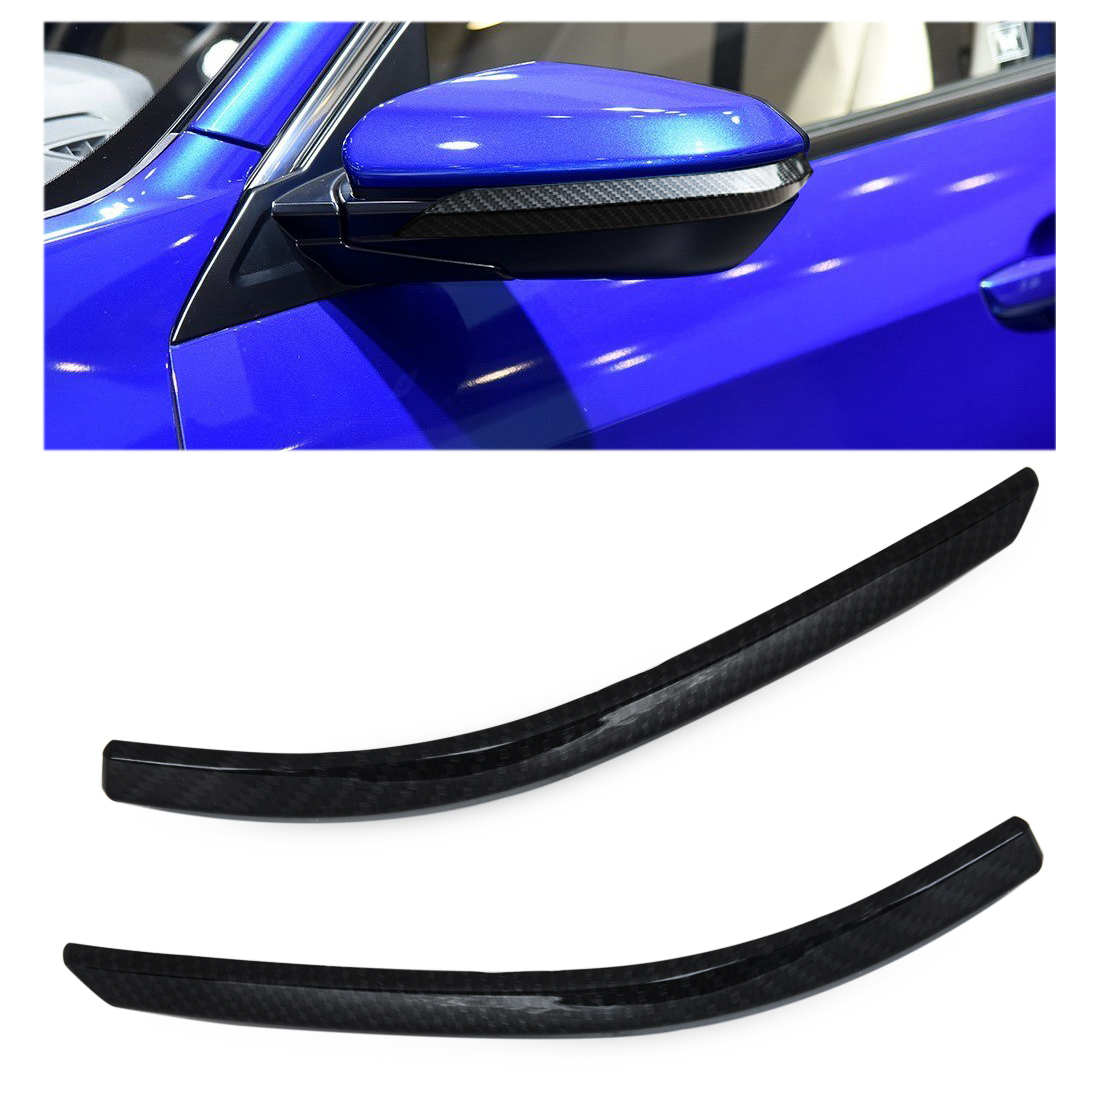 DWCX 2x Left + Right Car Styling Black Carbon Fiber Texture Rearview Side Mirror Strip Cover Trim Fit For Honda Civic 2016 2017